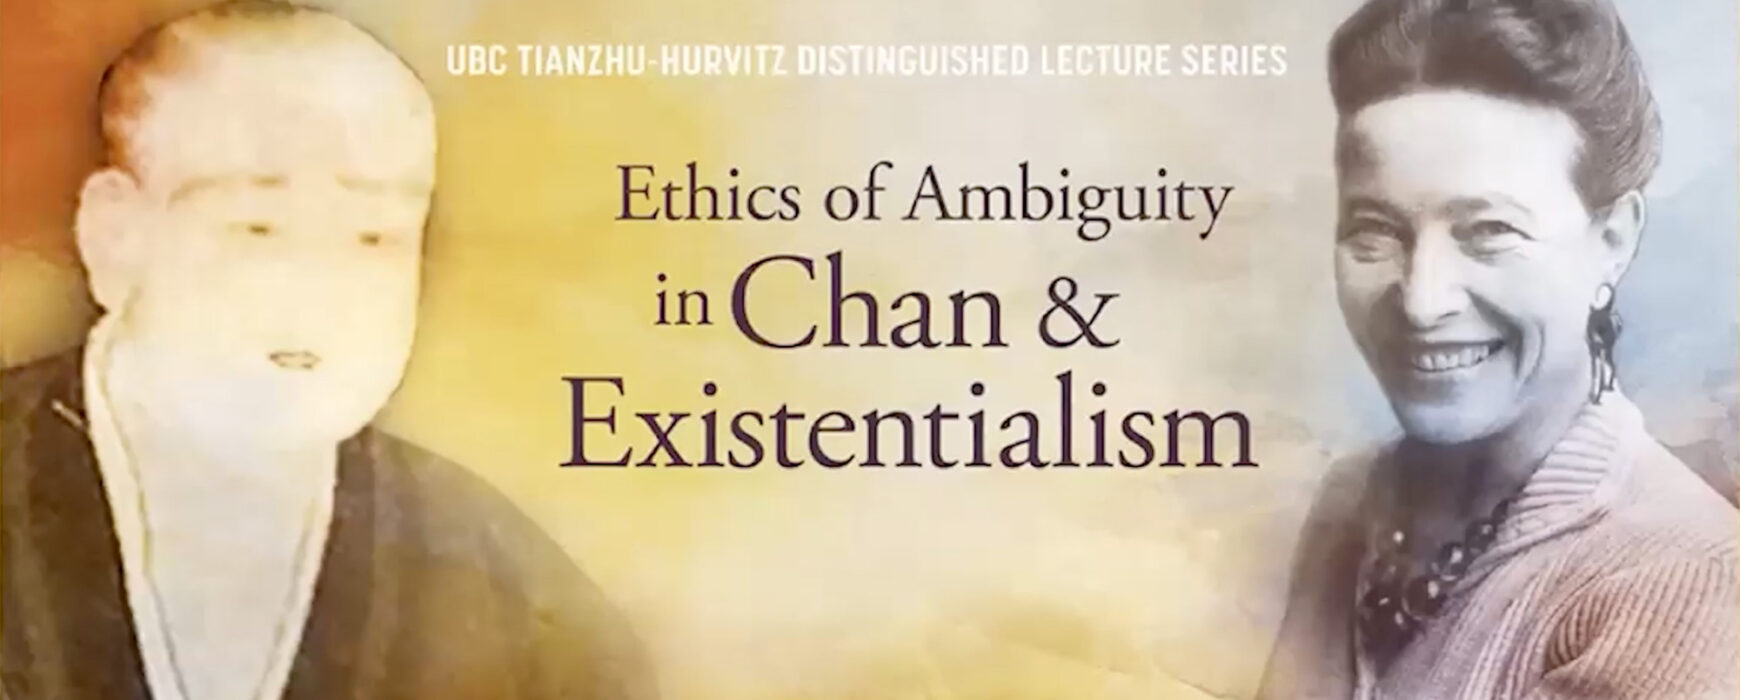 UBC Tianzhu-Hurvitz Distinguished Lecture Series: Lecture by Prof. Wendi Adamek (University of Calgary), April 22, 2021